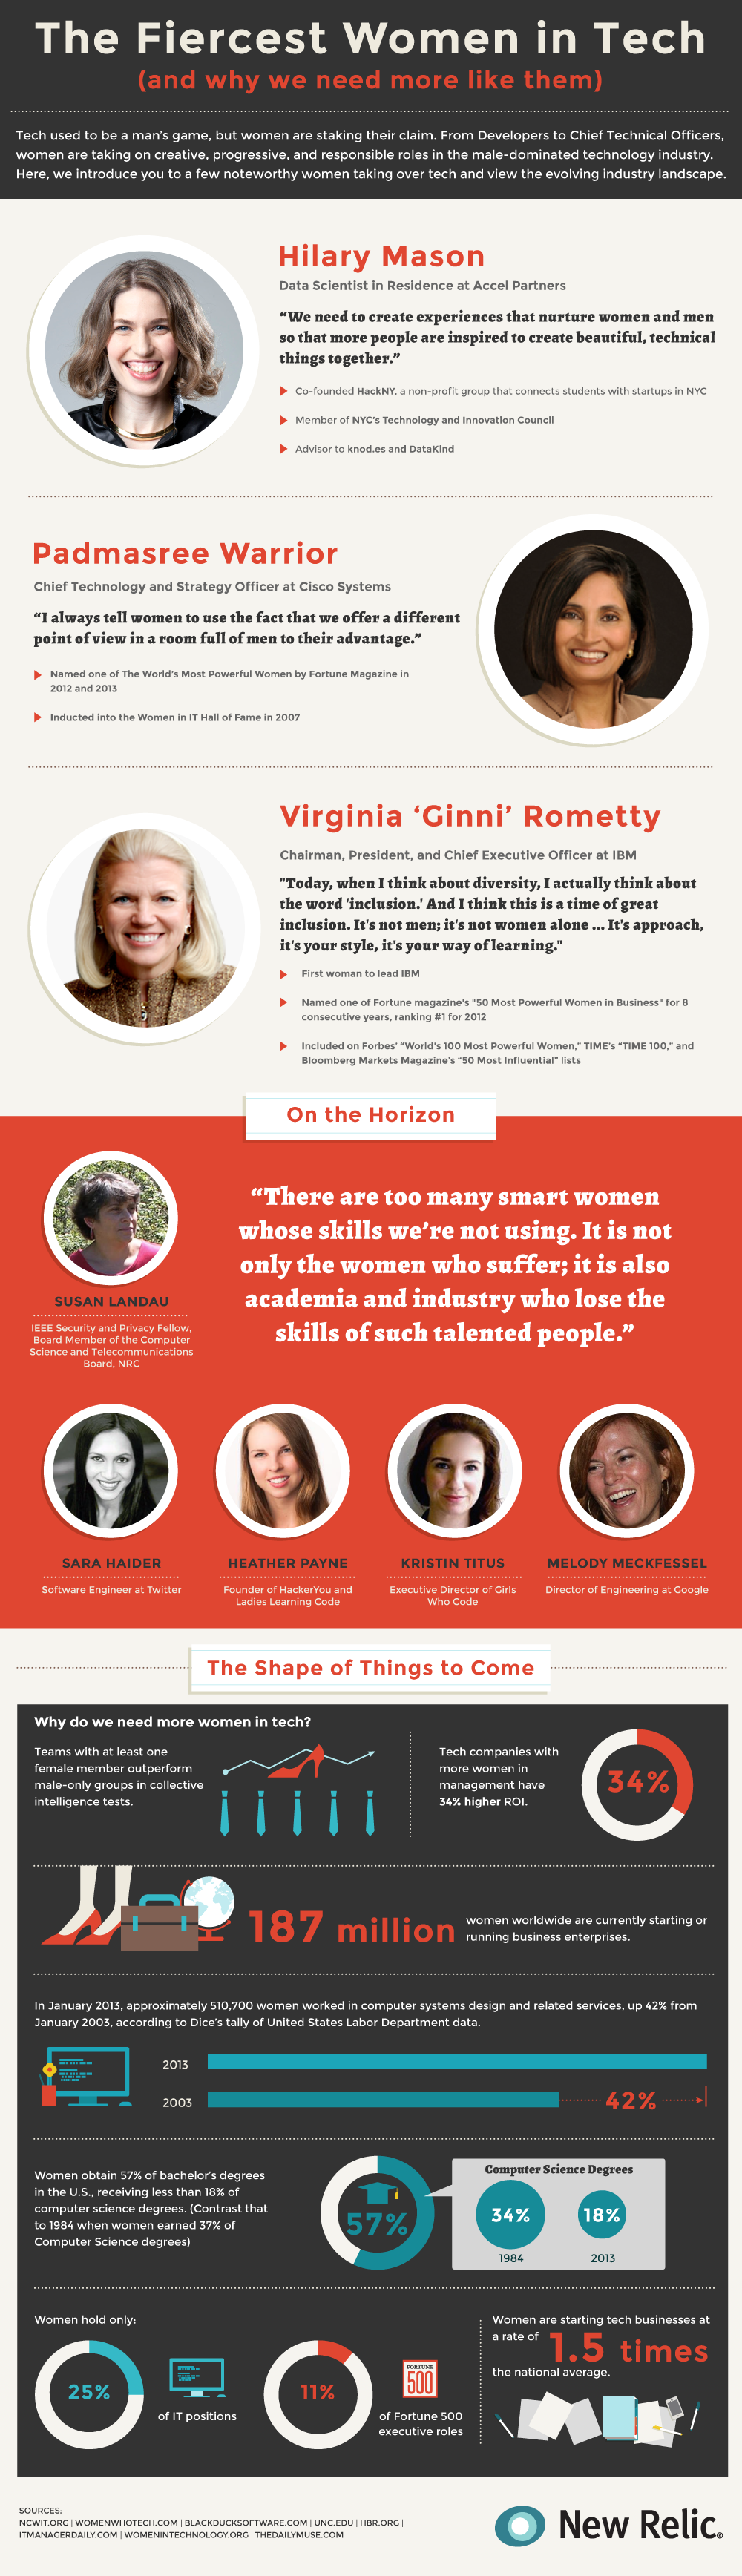 Infographic: The Fiercest Women in Tech (and Why We Need More Like Them)